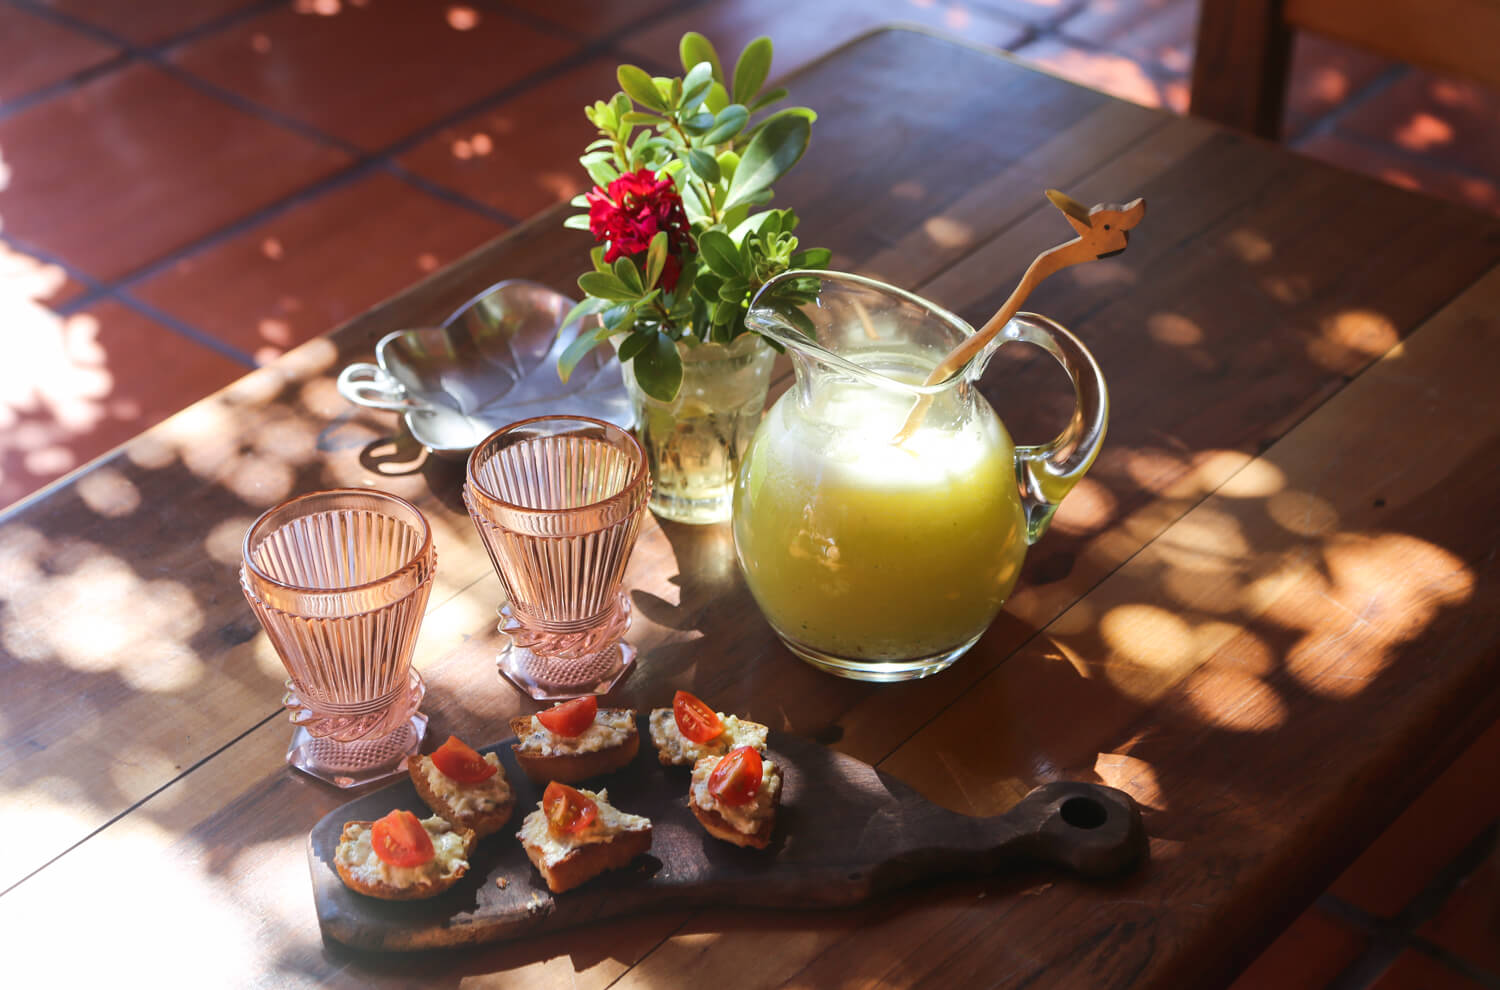 A pitcher of lemonade and a platter of bruscetta on a wooden table at Estancia la Banada San Miguel del Monte